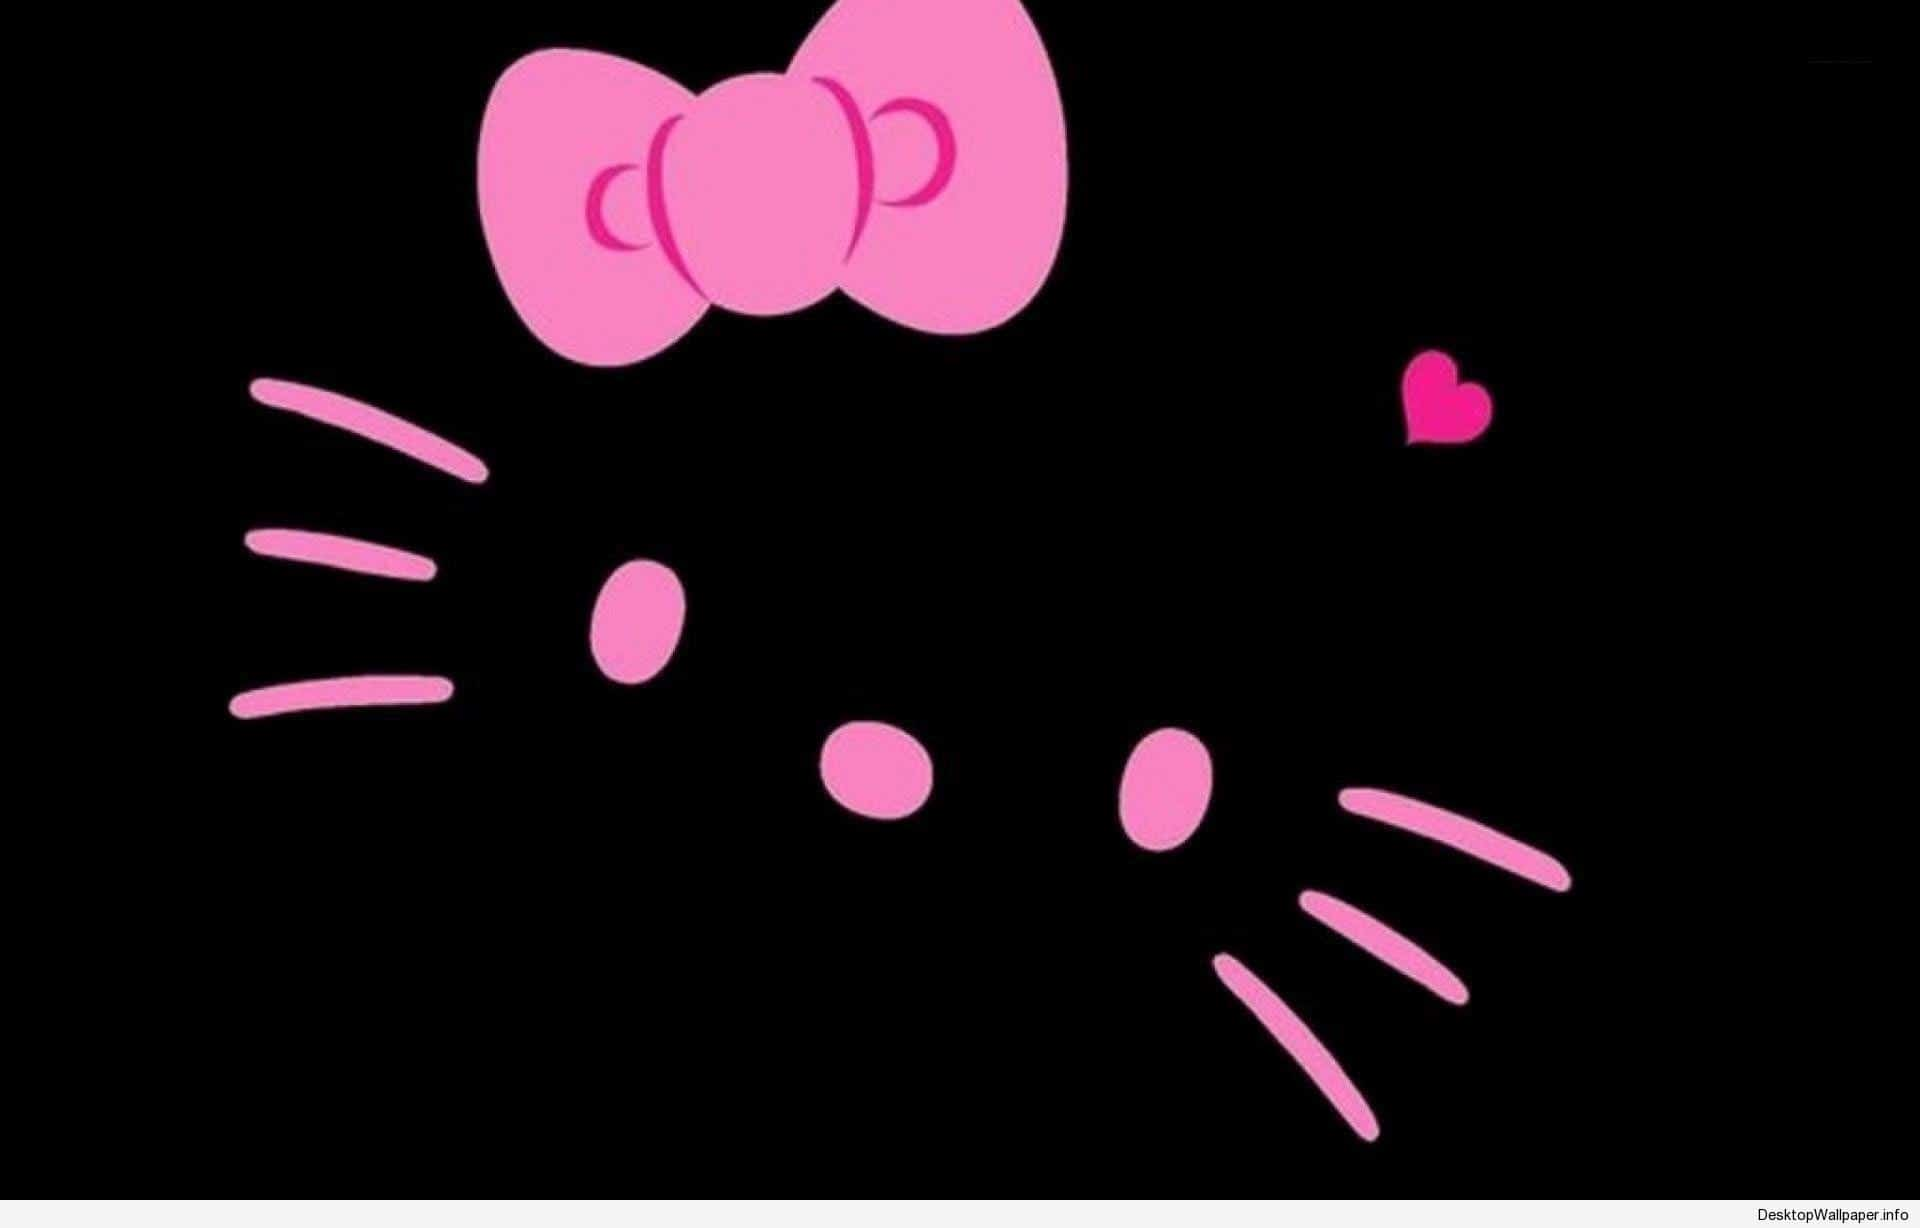 Black Hello Kitty Wallpapers Top Free Black Hello Kitty Backgrounds Wallpaperaccess